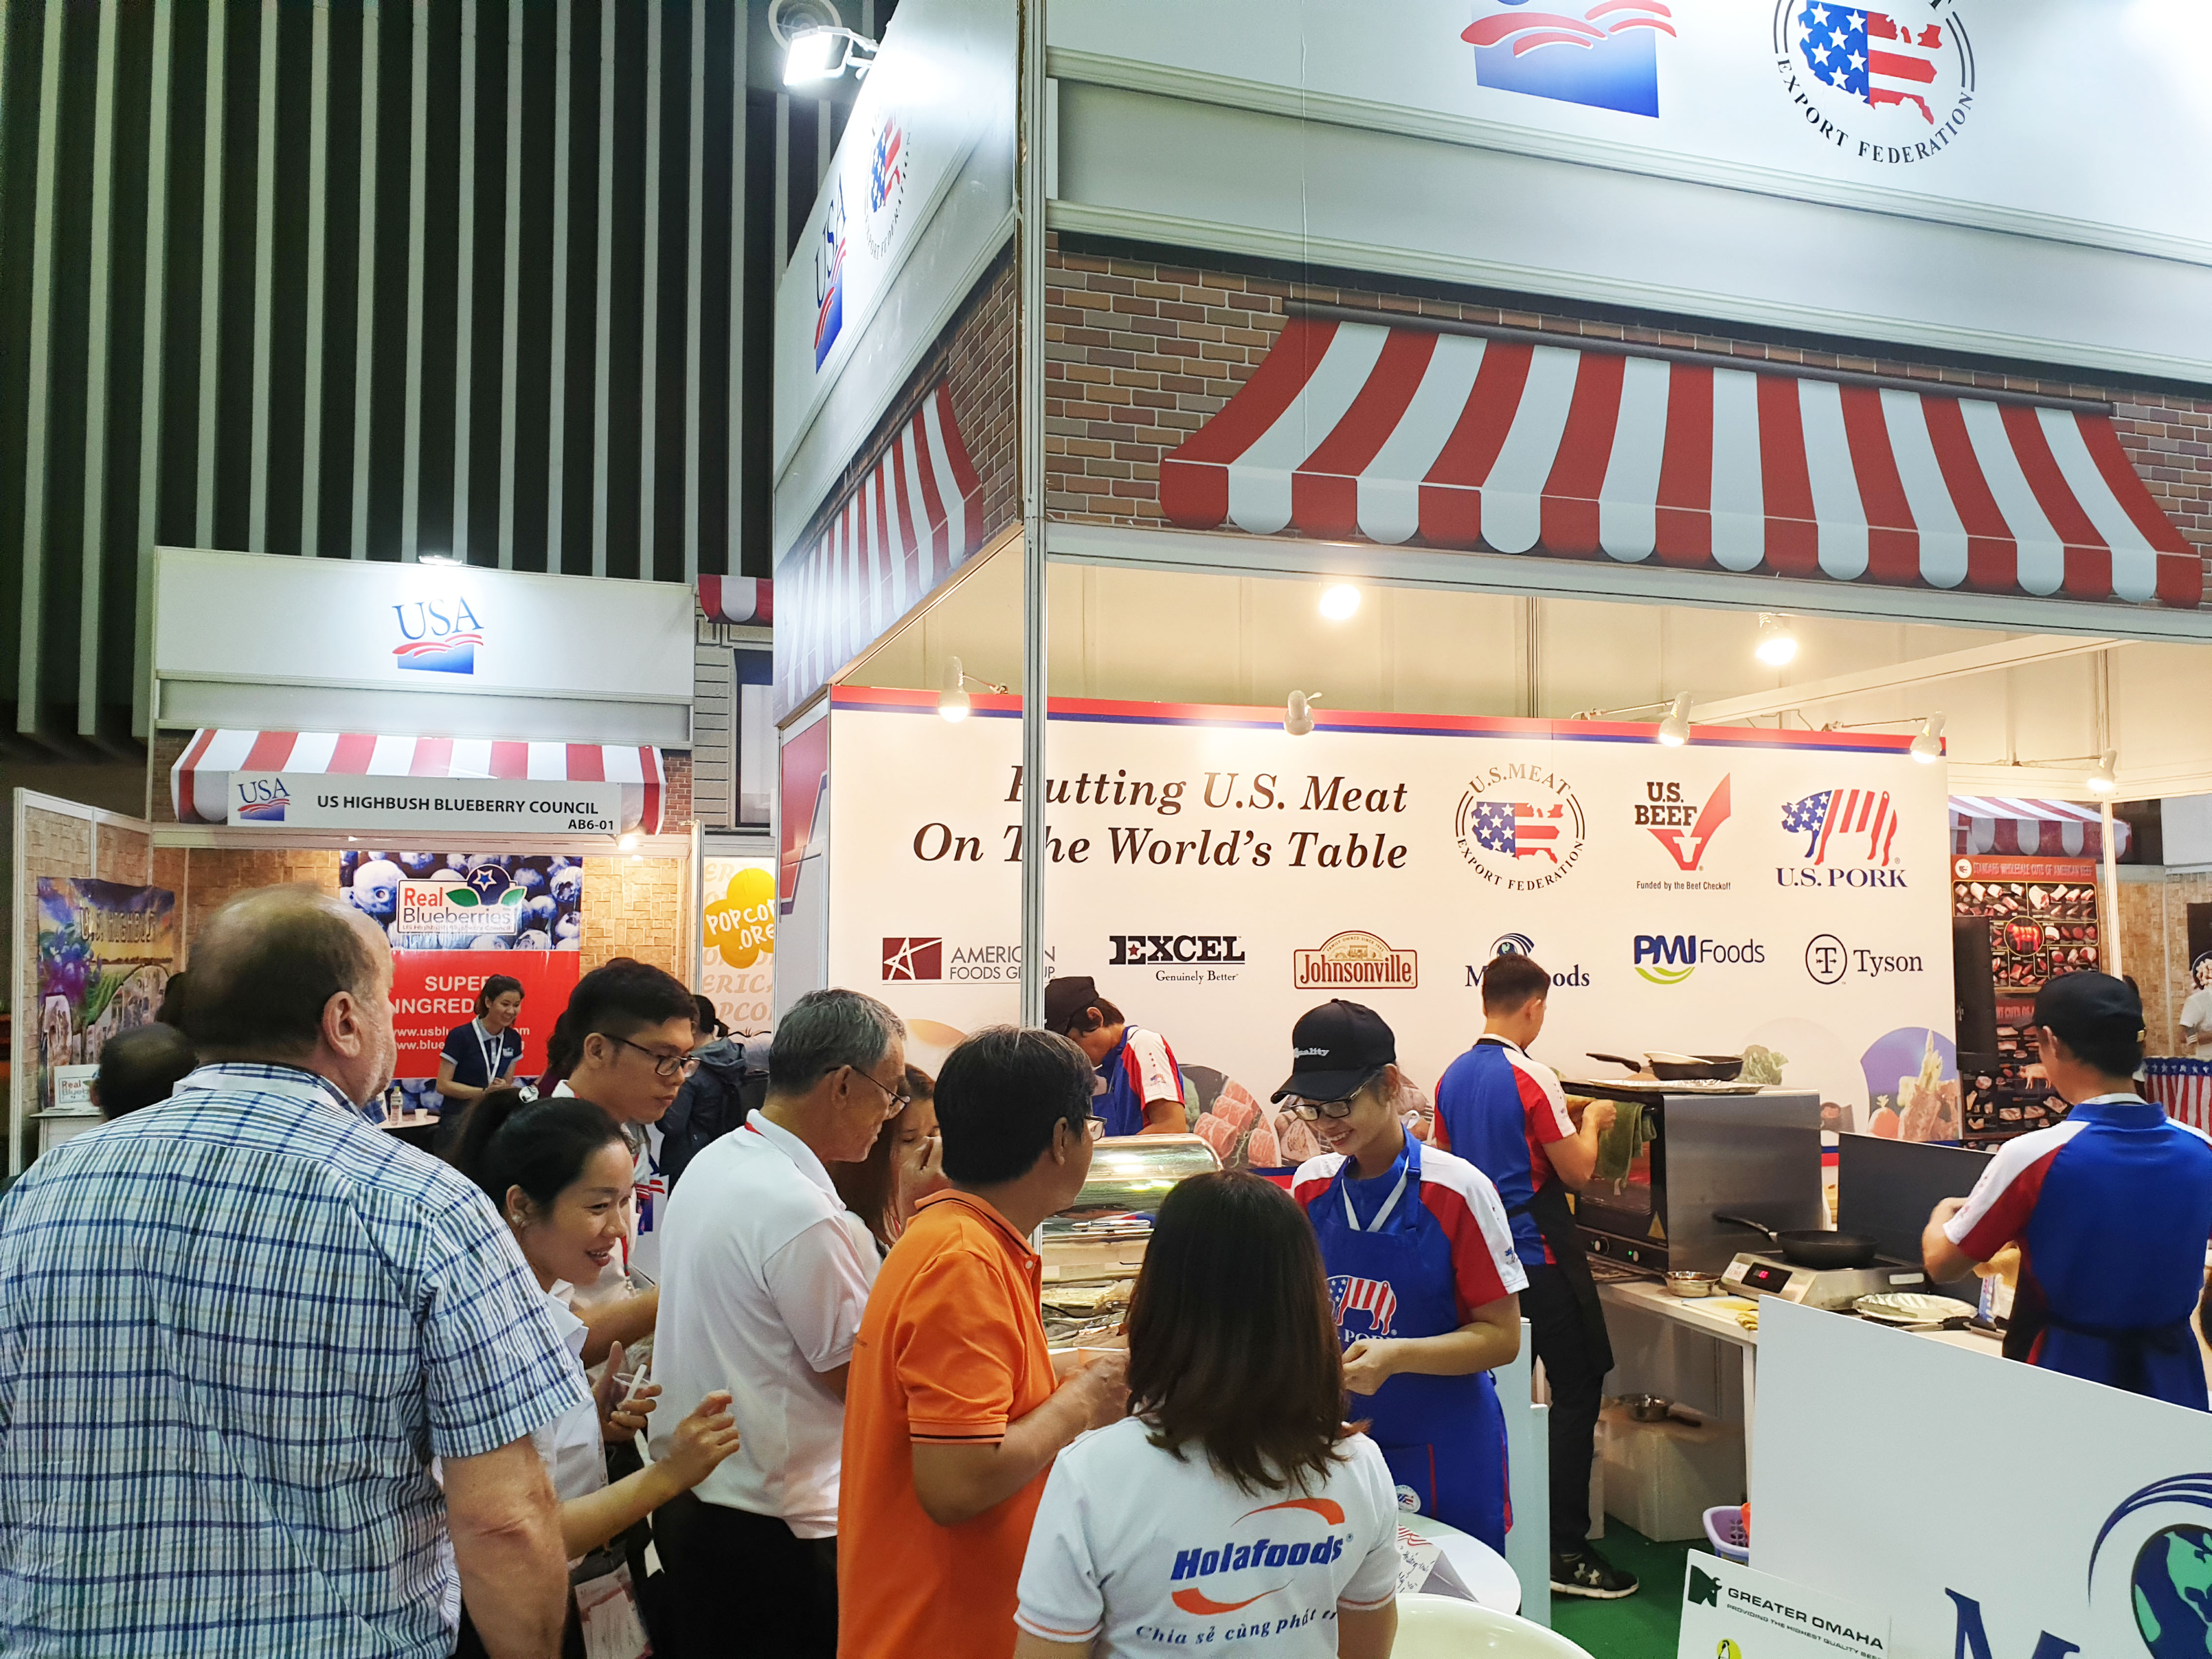 The USMEF booth was located inside the U.S. pavilion and attracted importers and foodservice managers from Vietnam and other countries in the ASEAN region